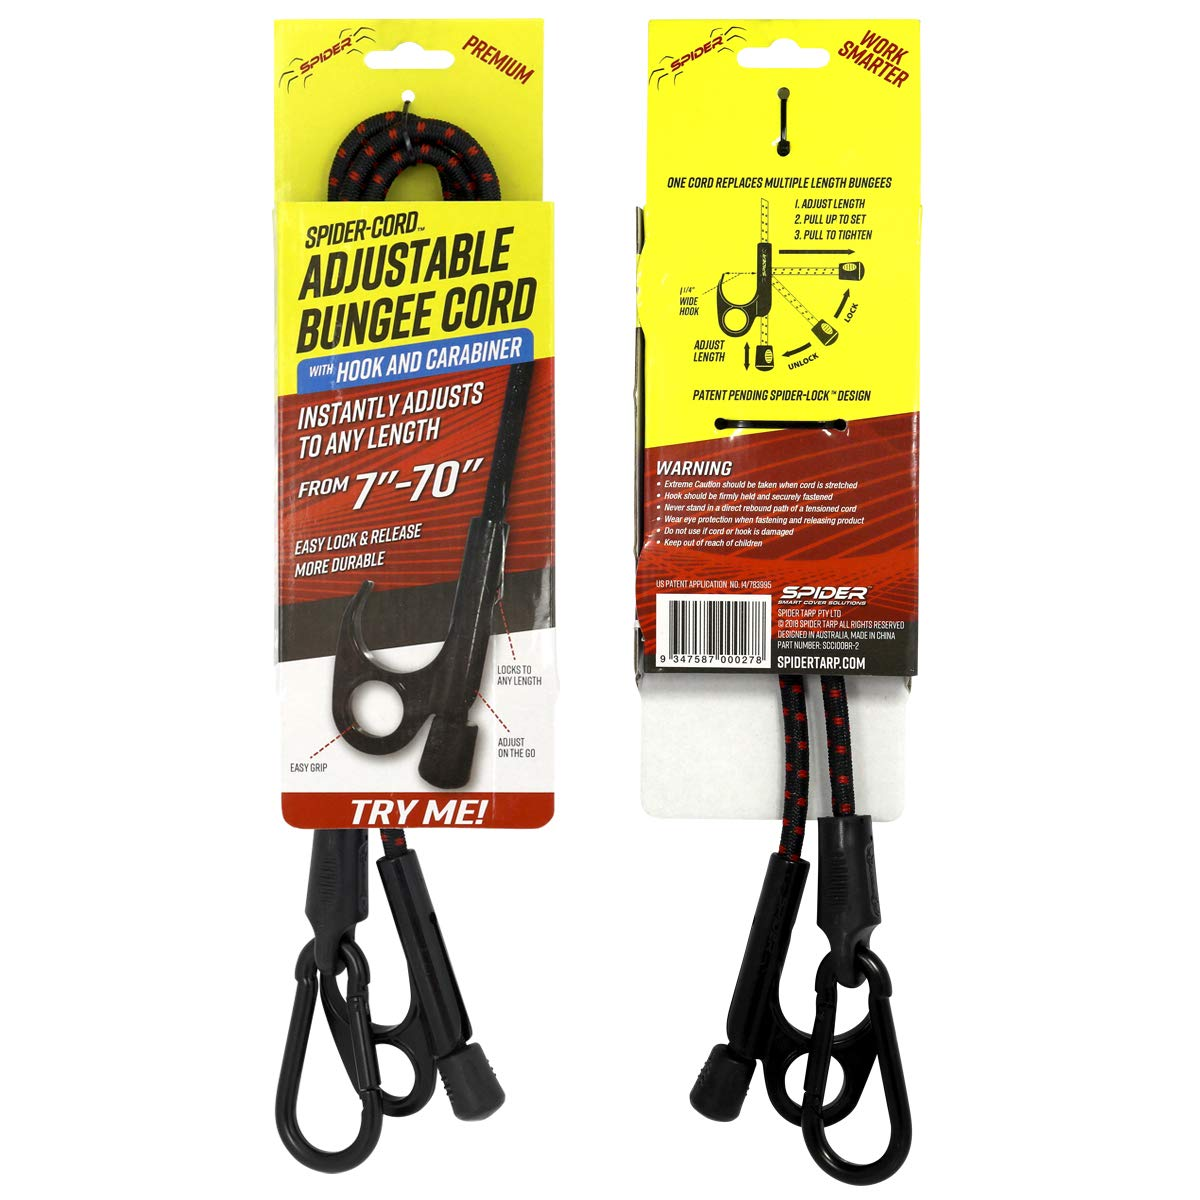 SPIDER Heavy-Duty Bungee Cords with Adjustable /& Locking Length with a Hook and Carabiner 2-Pack Patent Pending Tie-Down